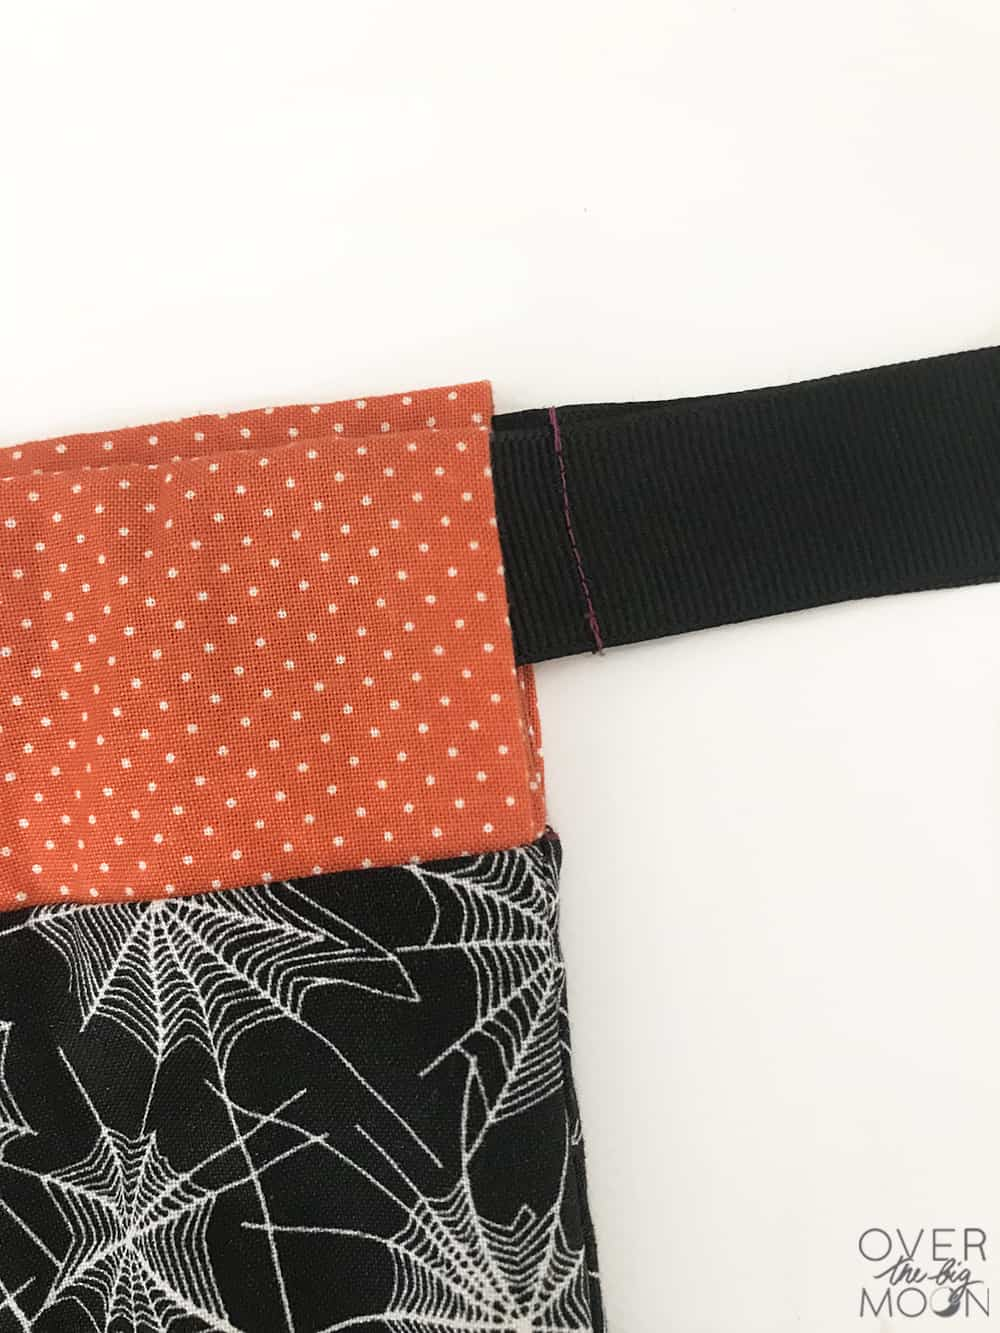 Drawstring Pillowcase - perfect for kids to collect candy on Halloween with! From www.overthebigmoon.com!